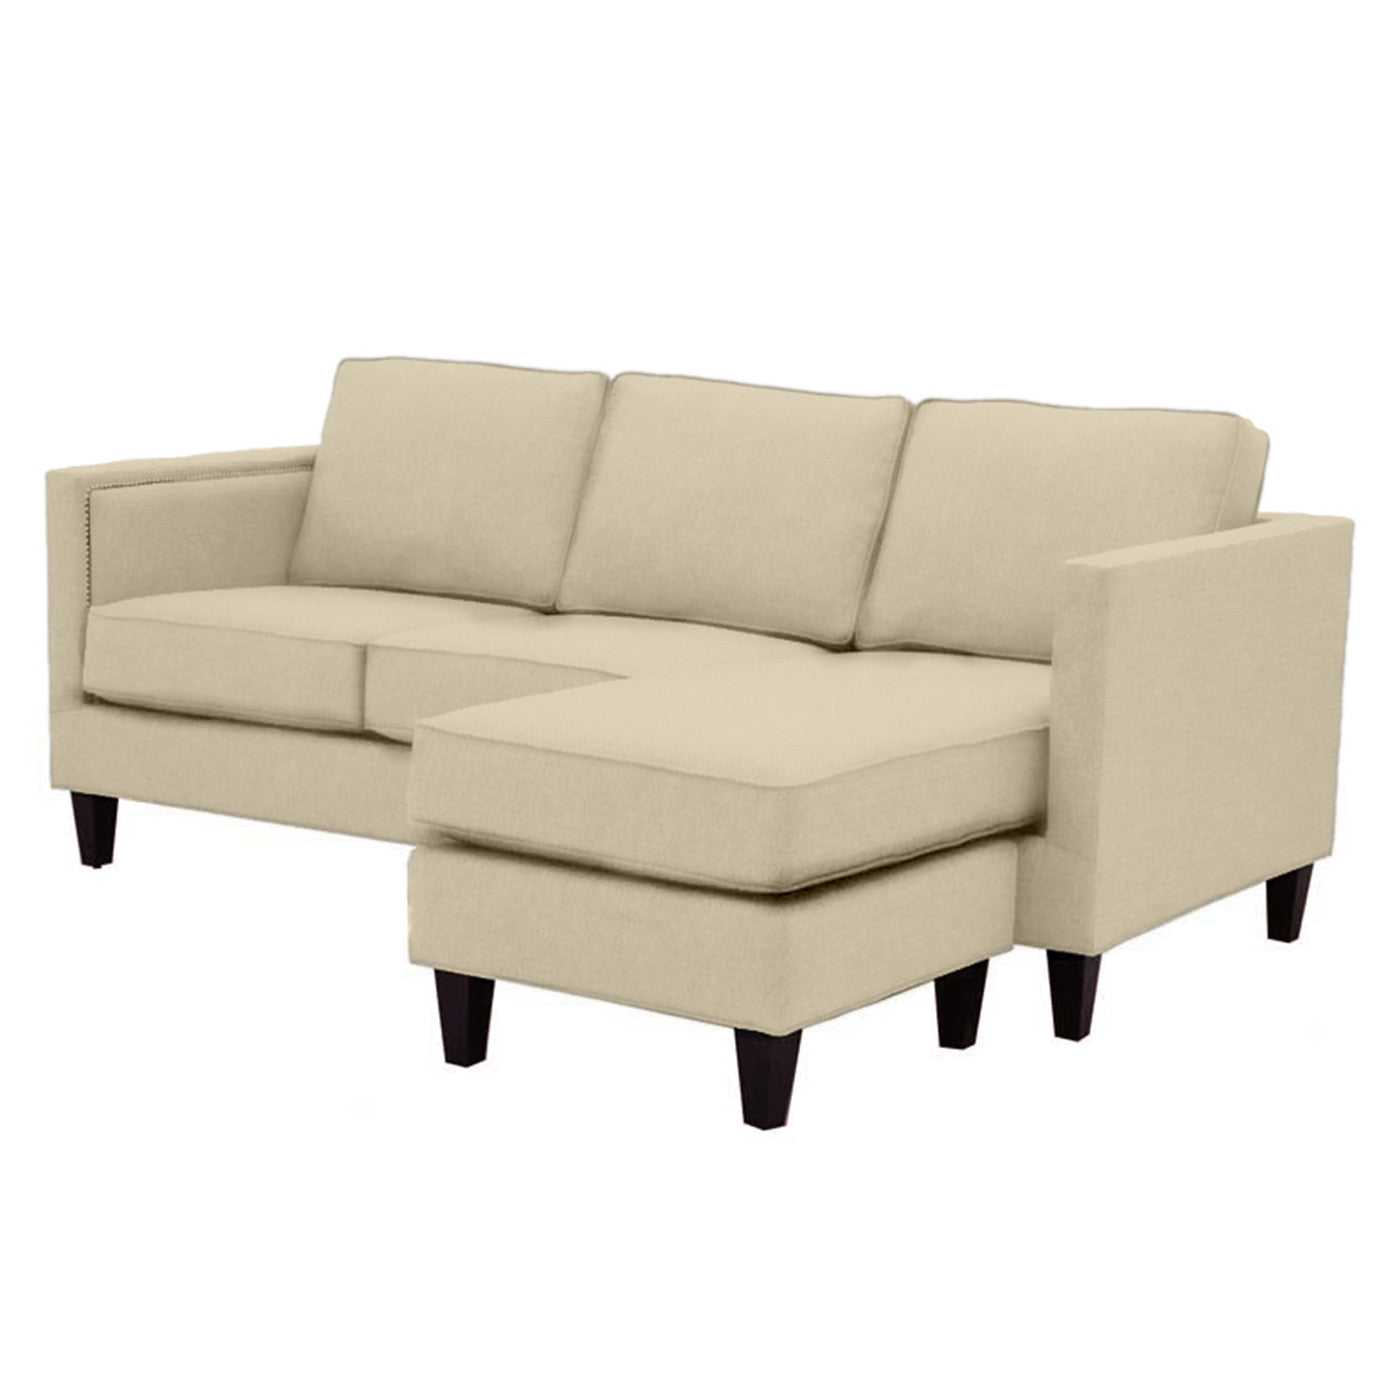 Anderson Reversible Chaise Sofa CHOICE OF FABRICS